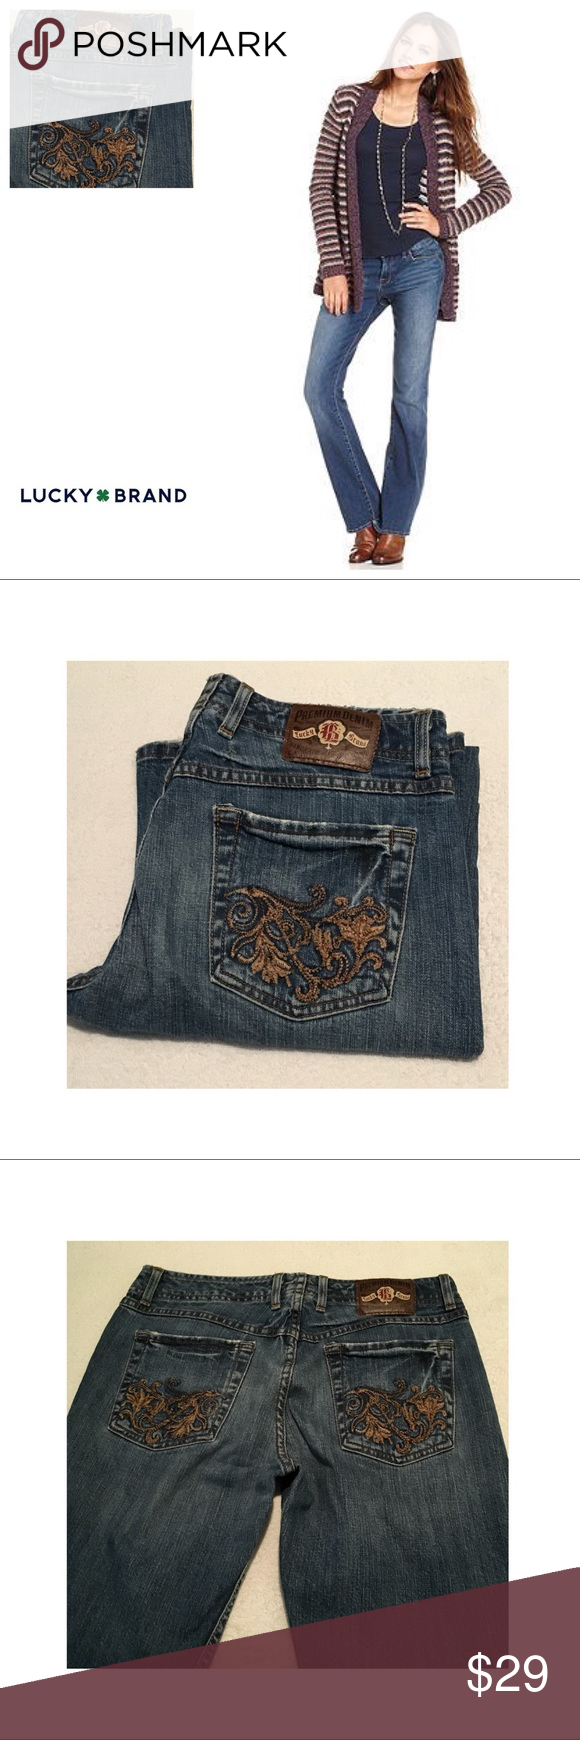 Lucky Flora Wonder embroidered jeans. 27☘️